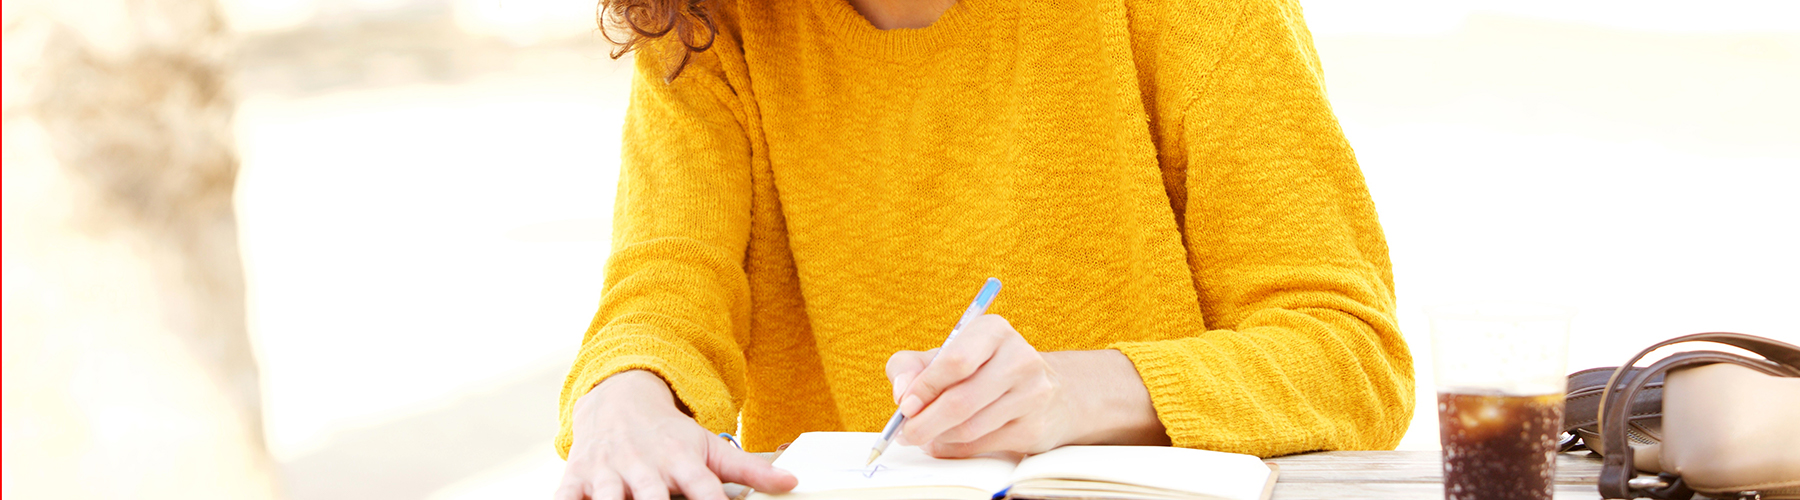 """Turner Center Launches """"The Art of Writing"""" Contest for Area Youth"""